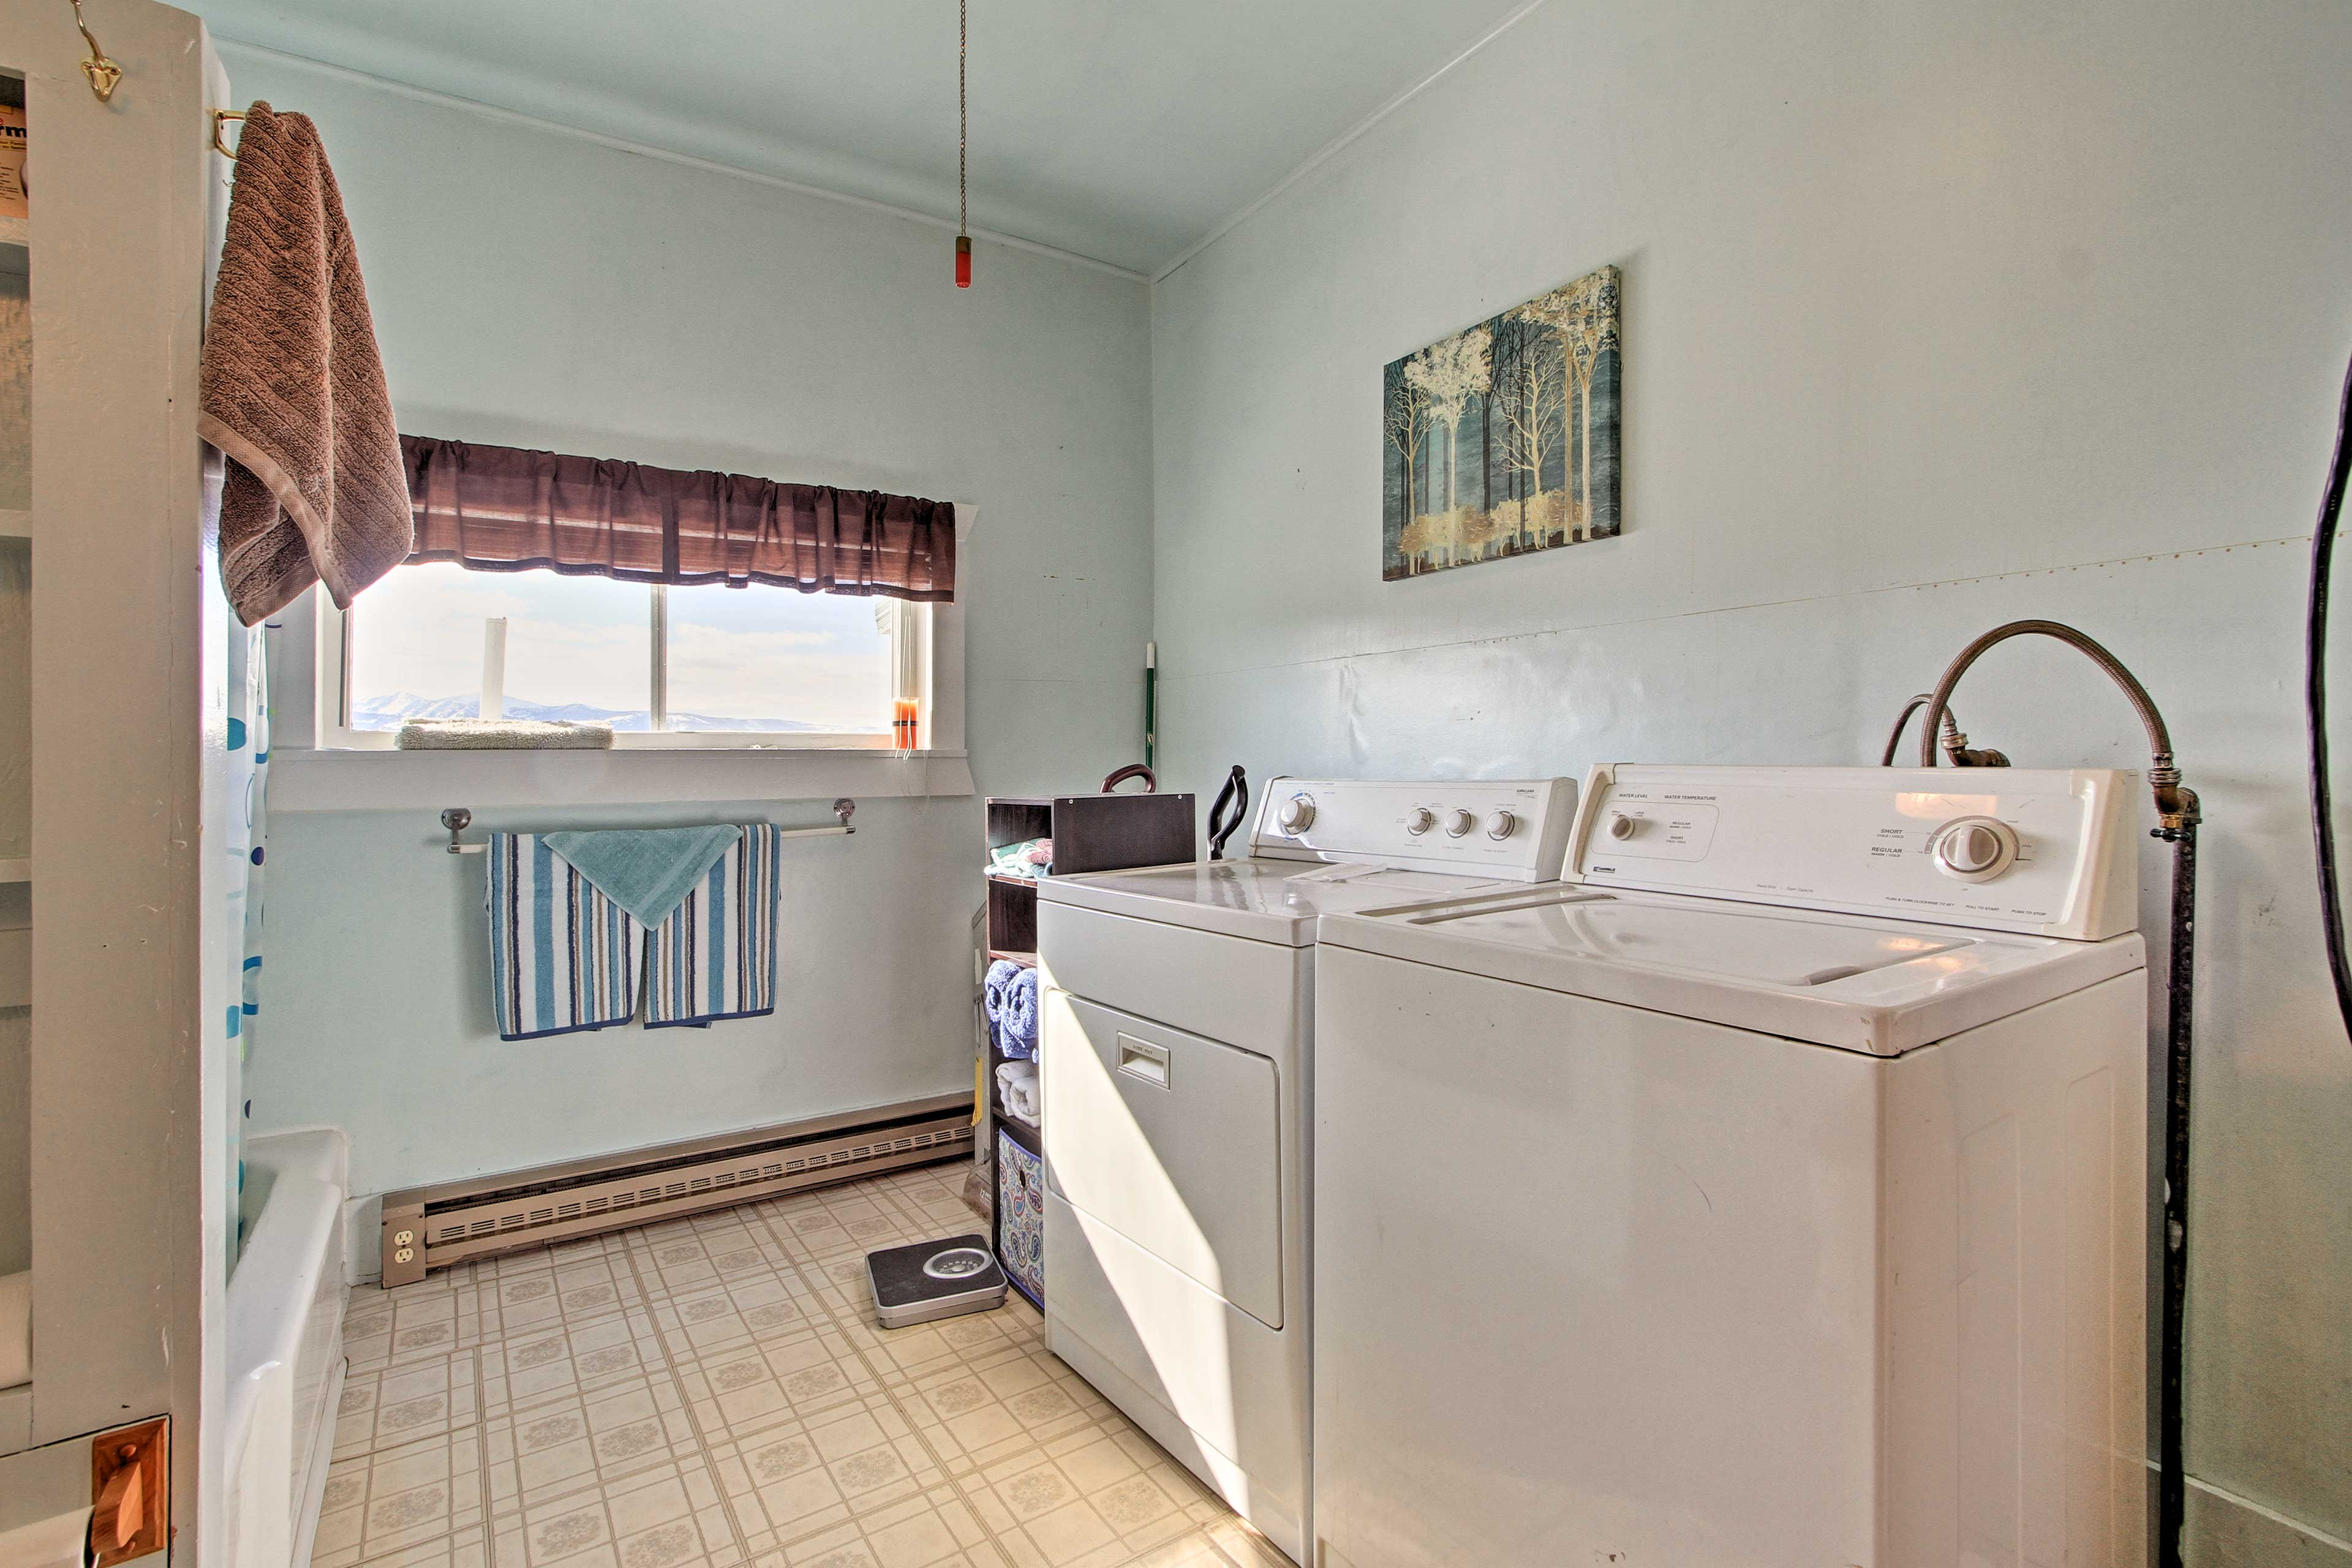 This space is also equipped with in-unit laundry machines.